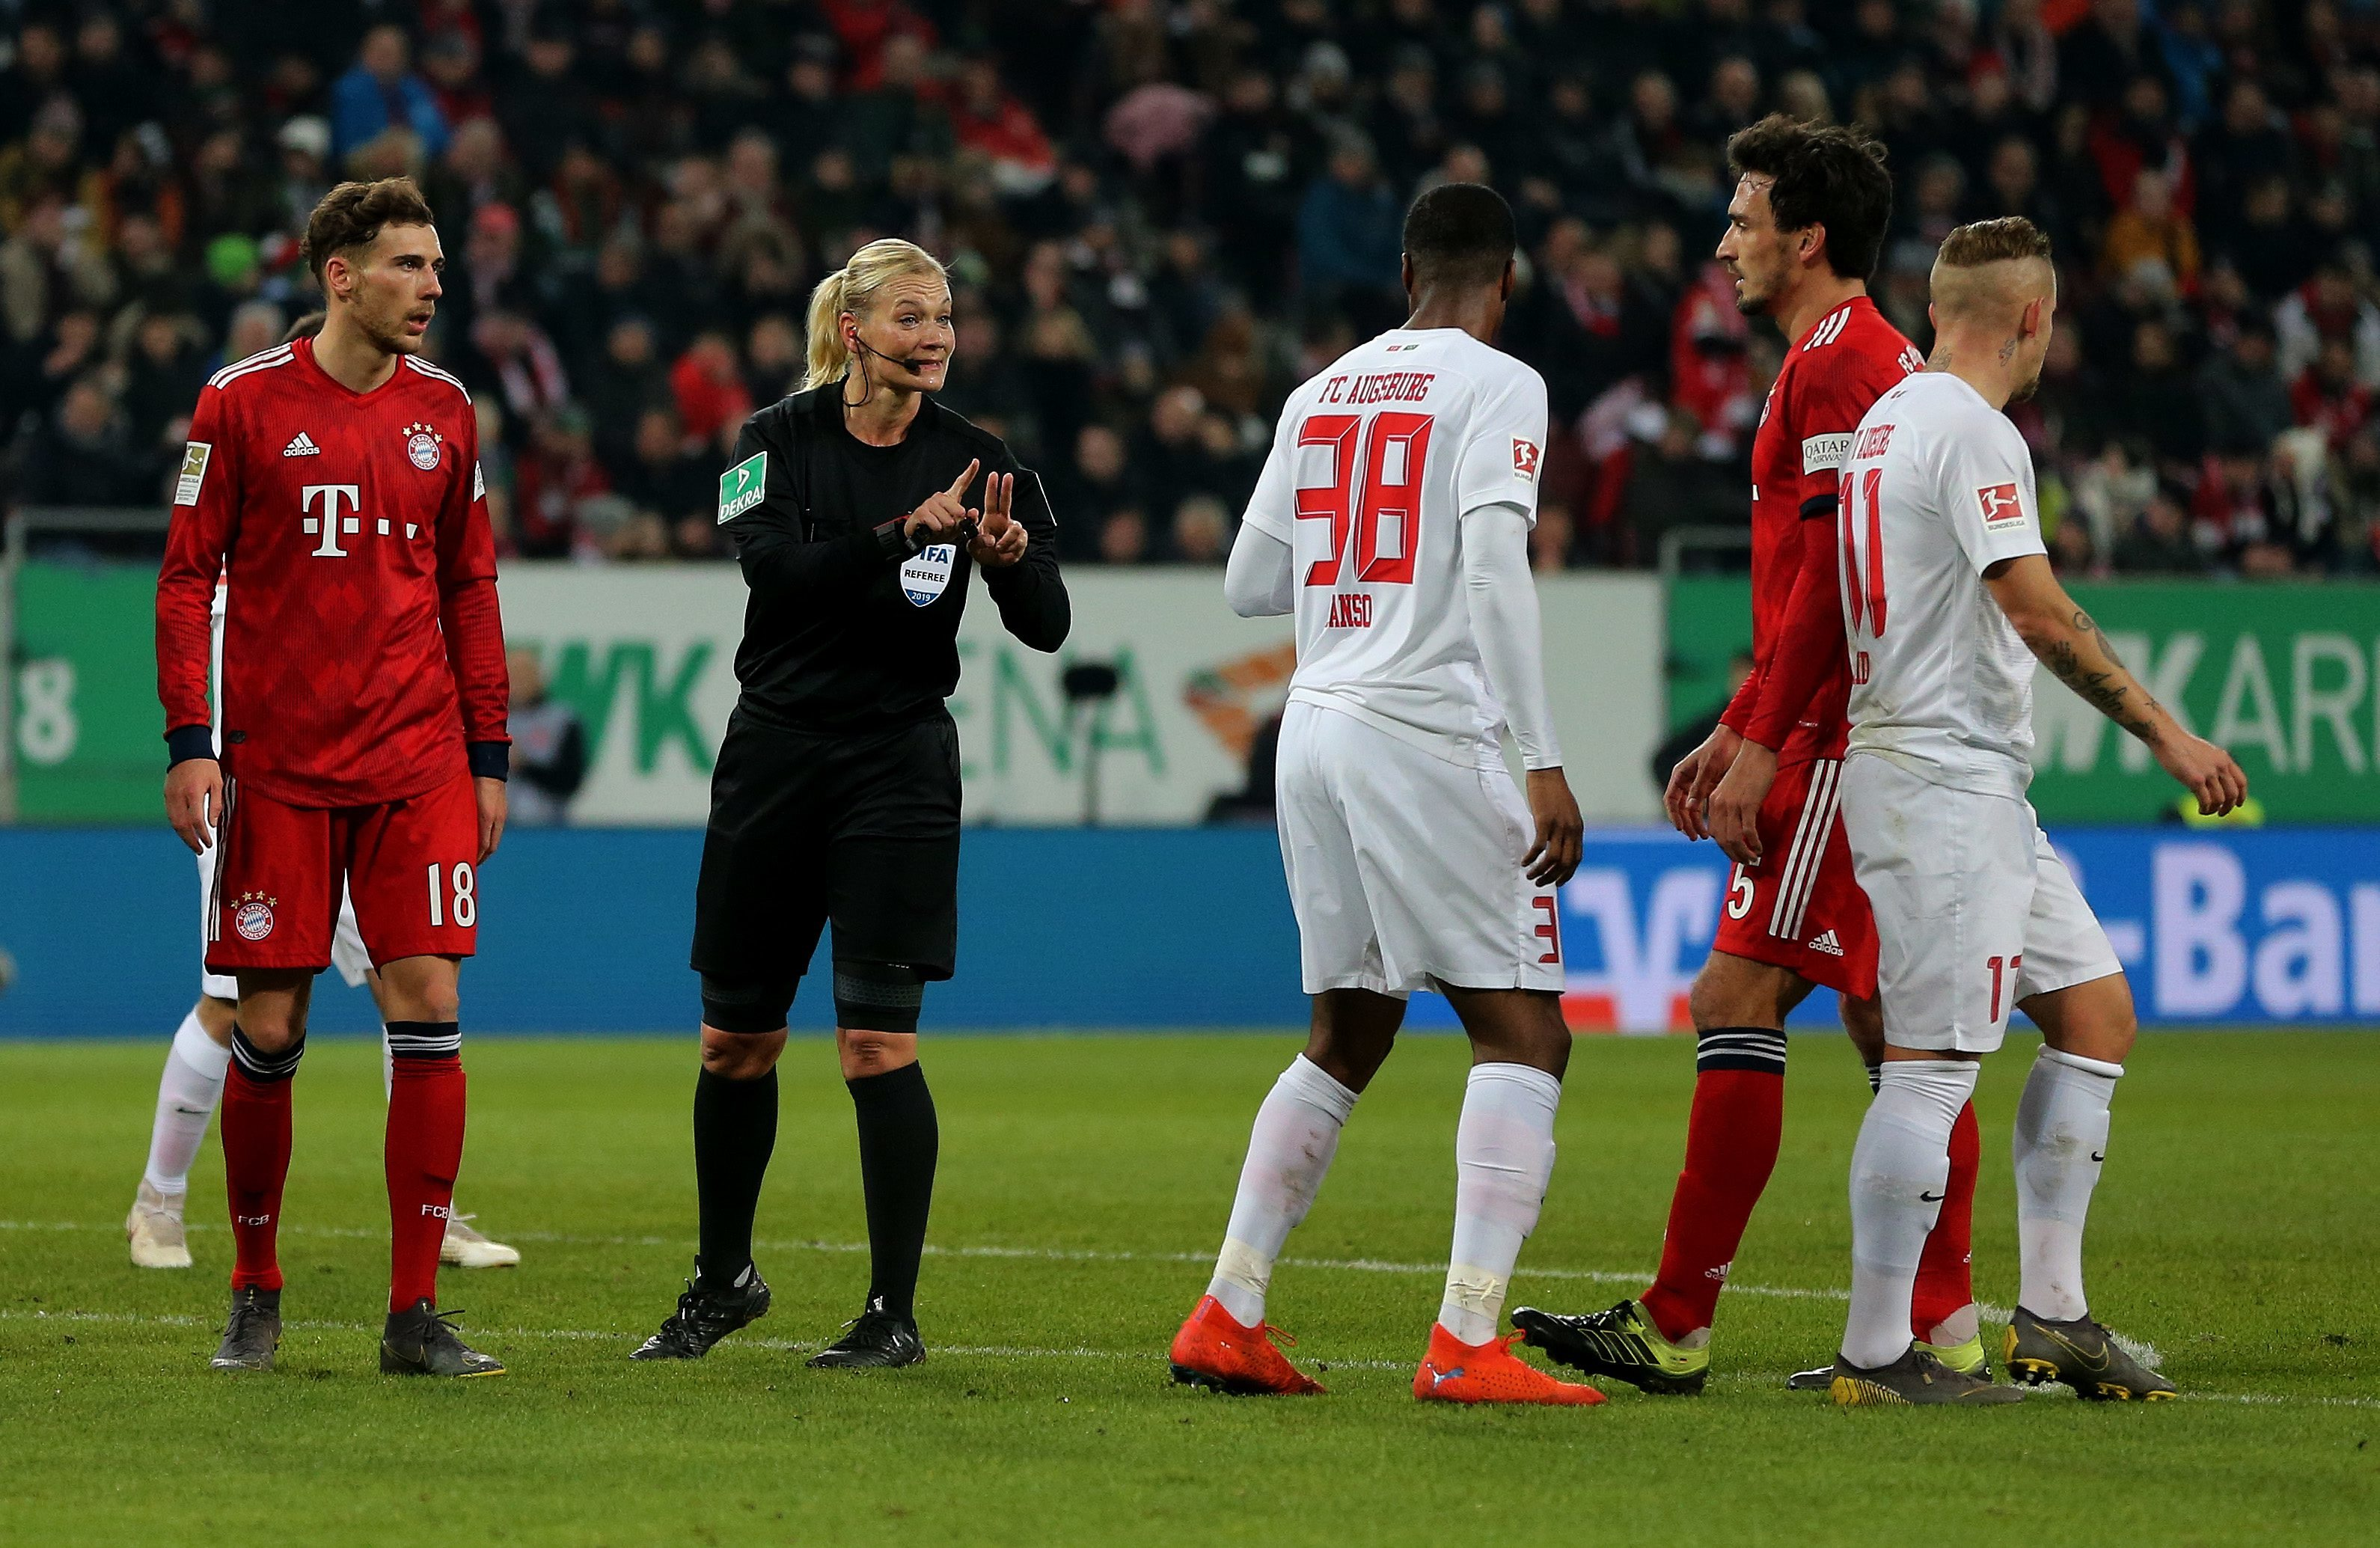 Iranian TV cancelled Bayern Game because of Women Referee